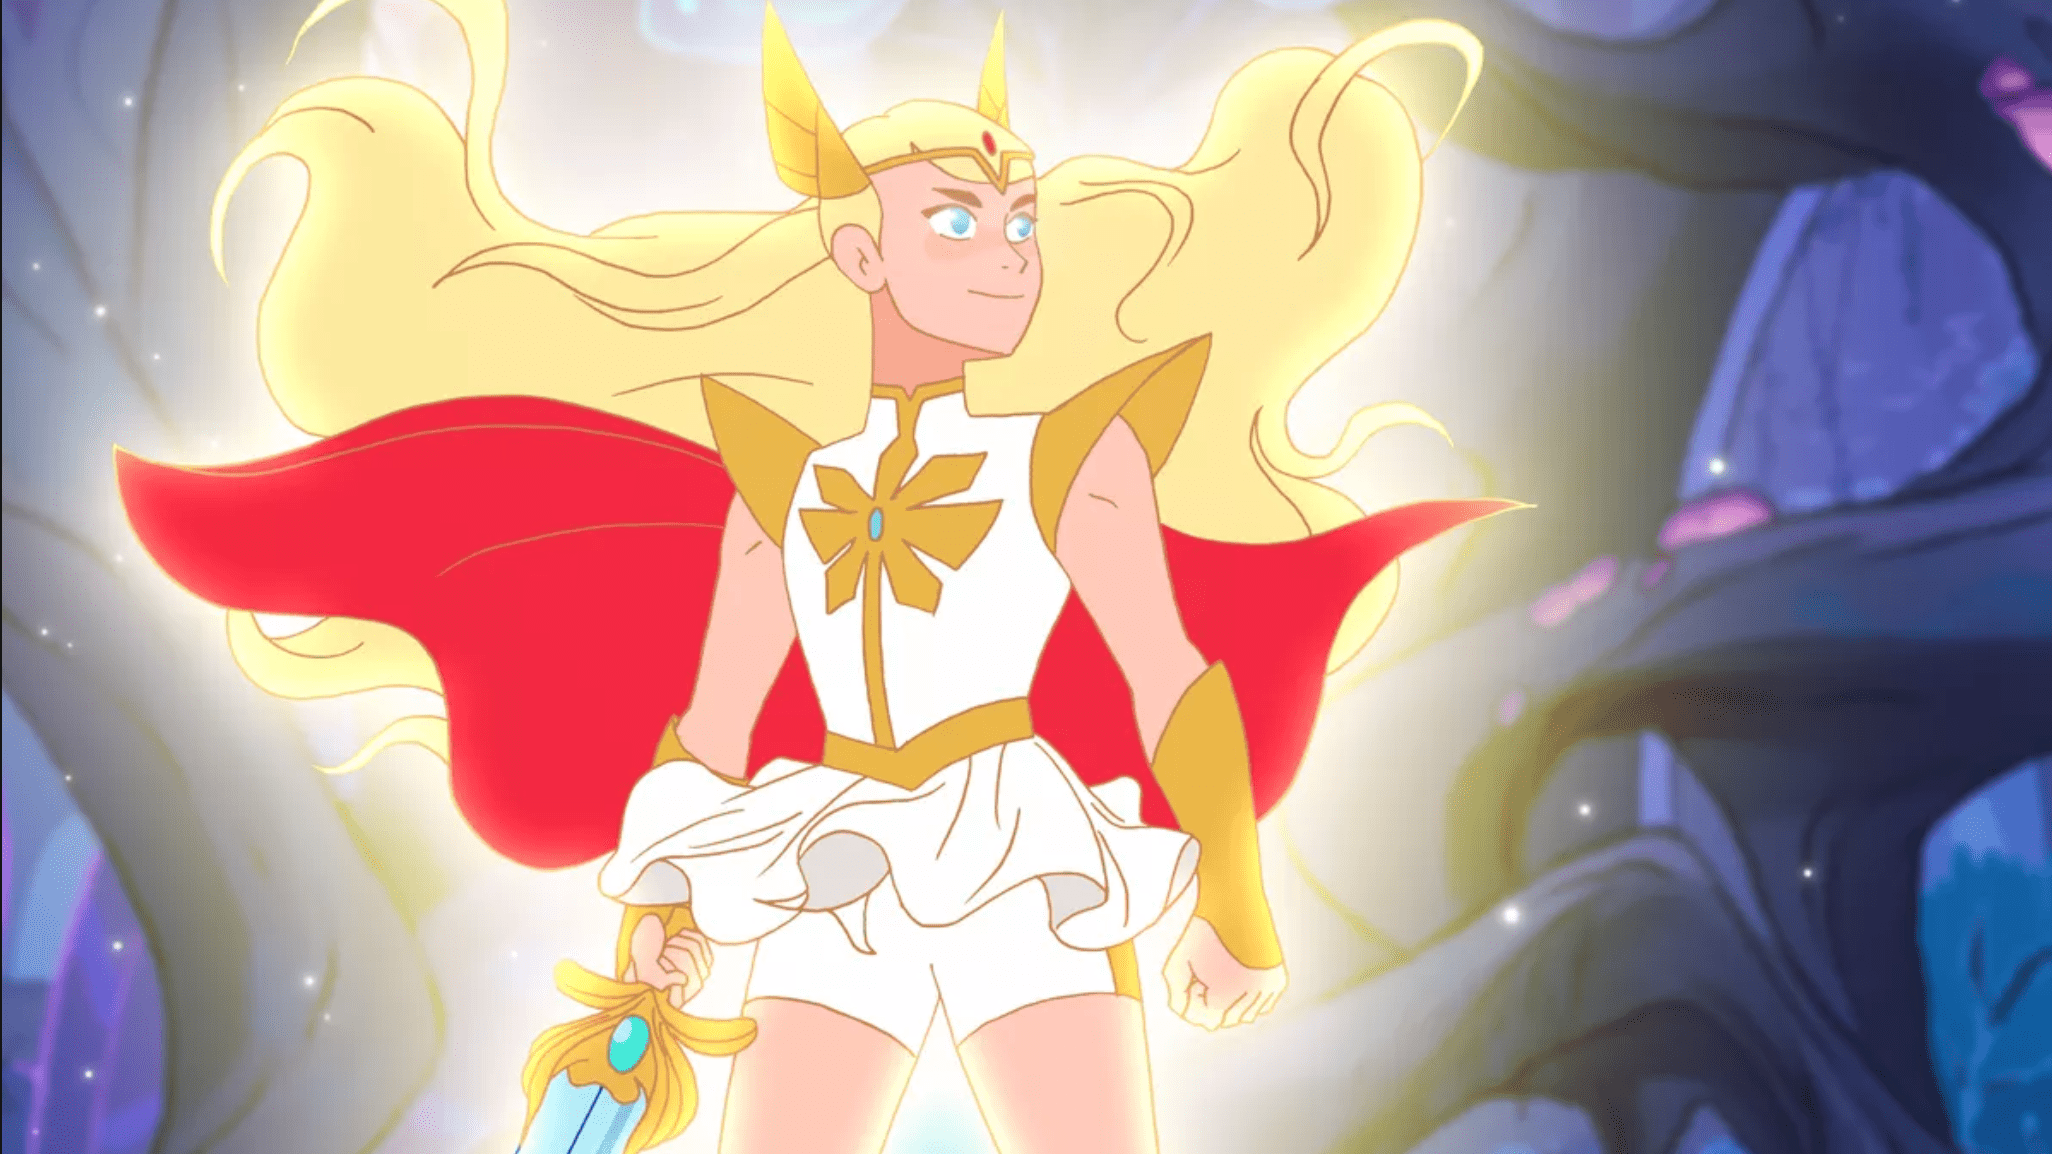 An image of Shera from the Netflix cartoon series